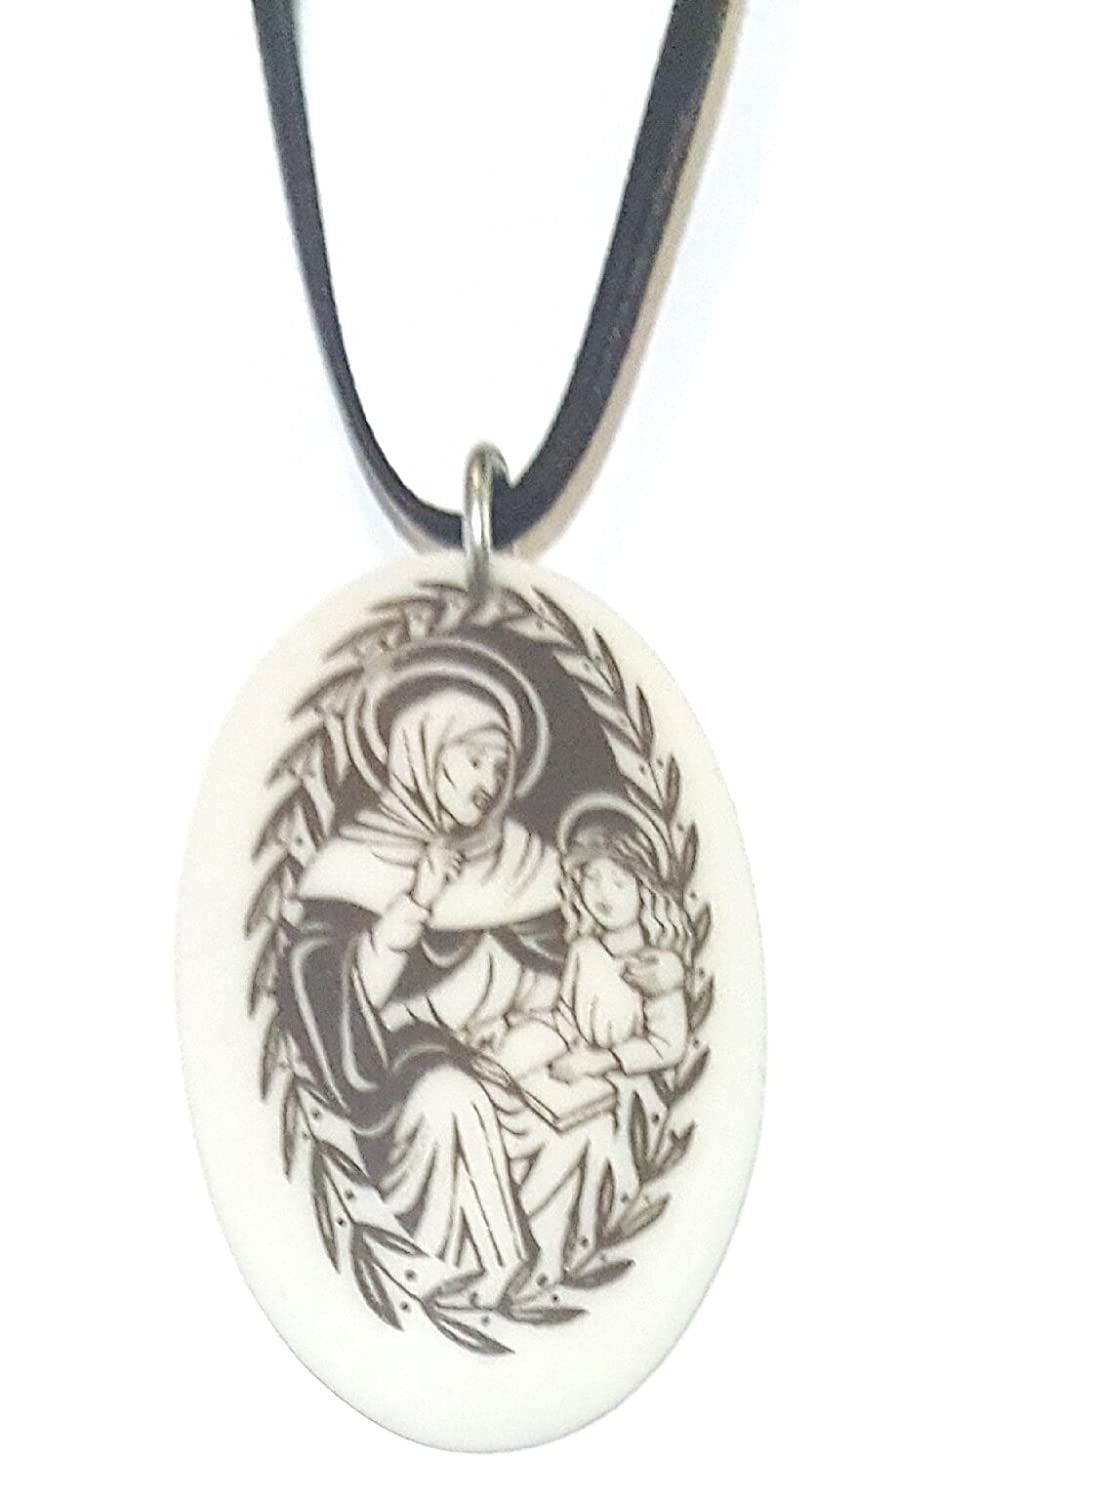 St. Anne Clay Medal on Cord Necklace, Catholic, Religious, Patron Saint, Womens or Mens Jewelry.